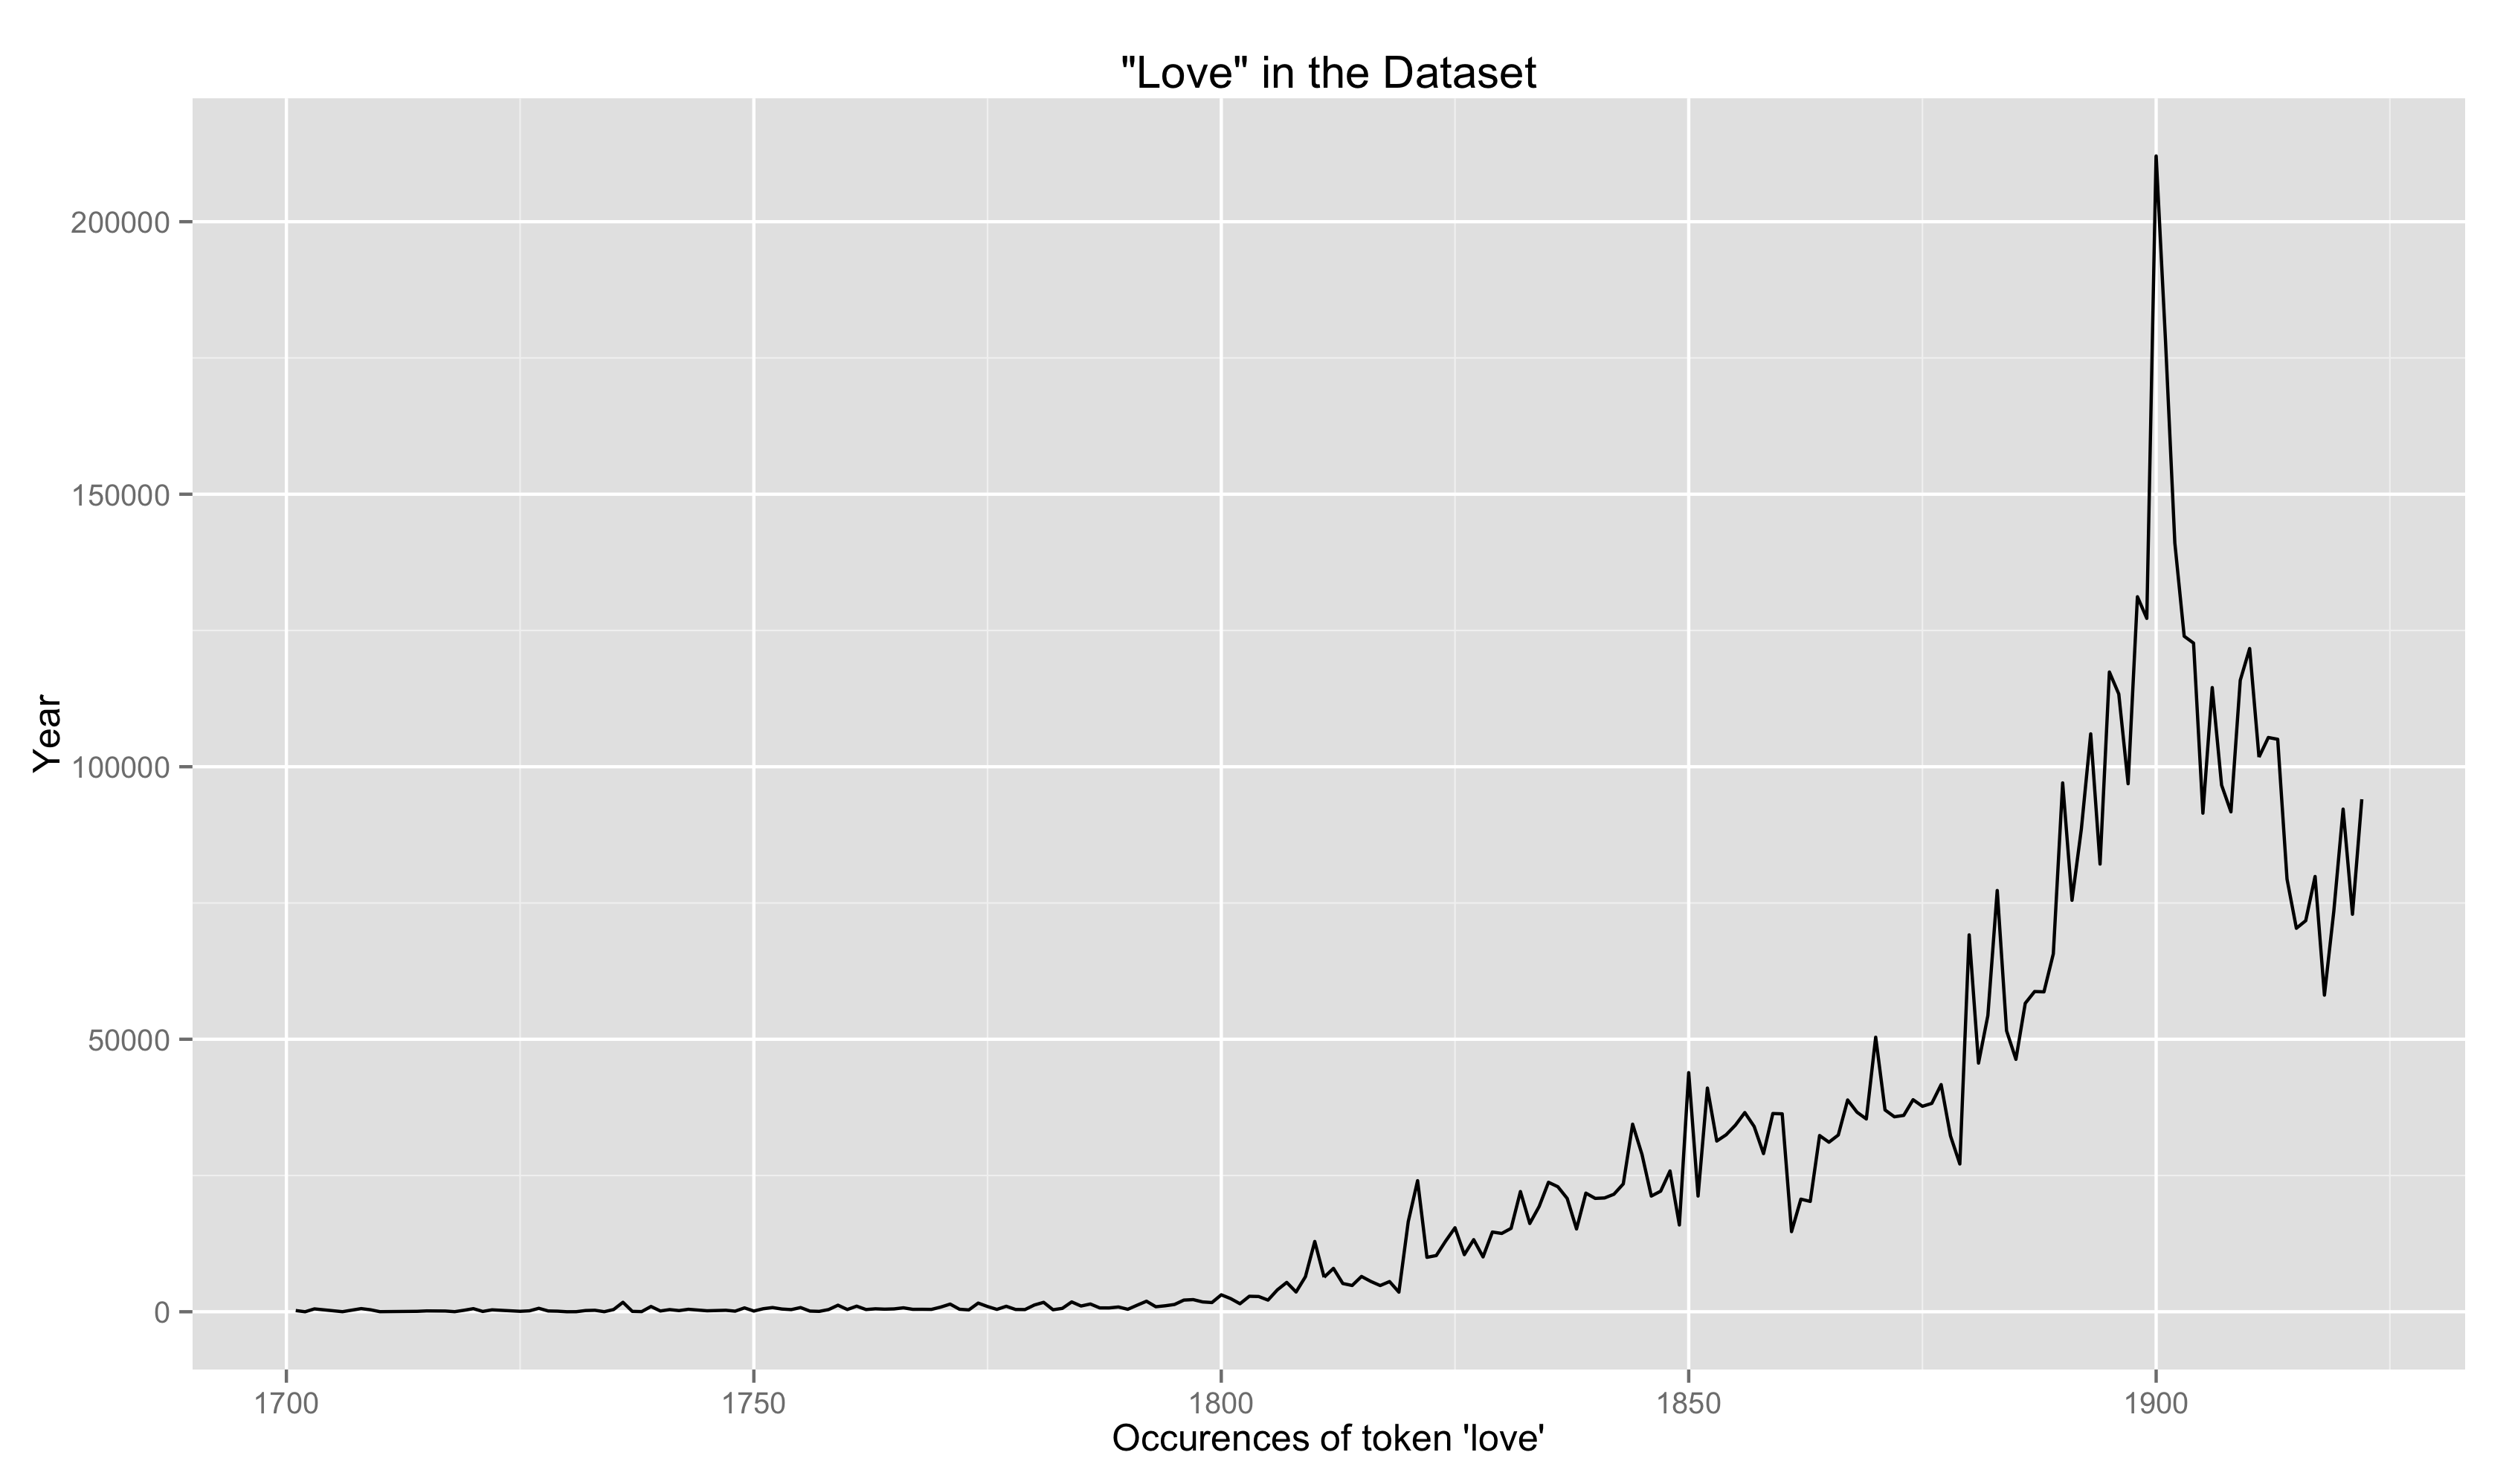 Unnormalized Occurences of the Term 'Love' in Dataset